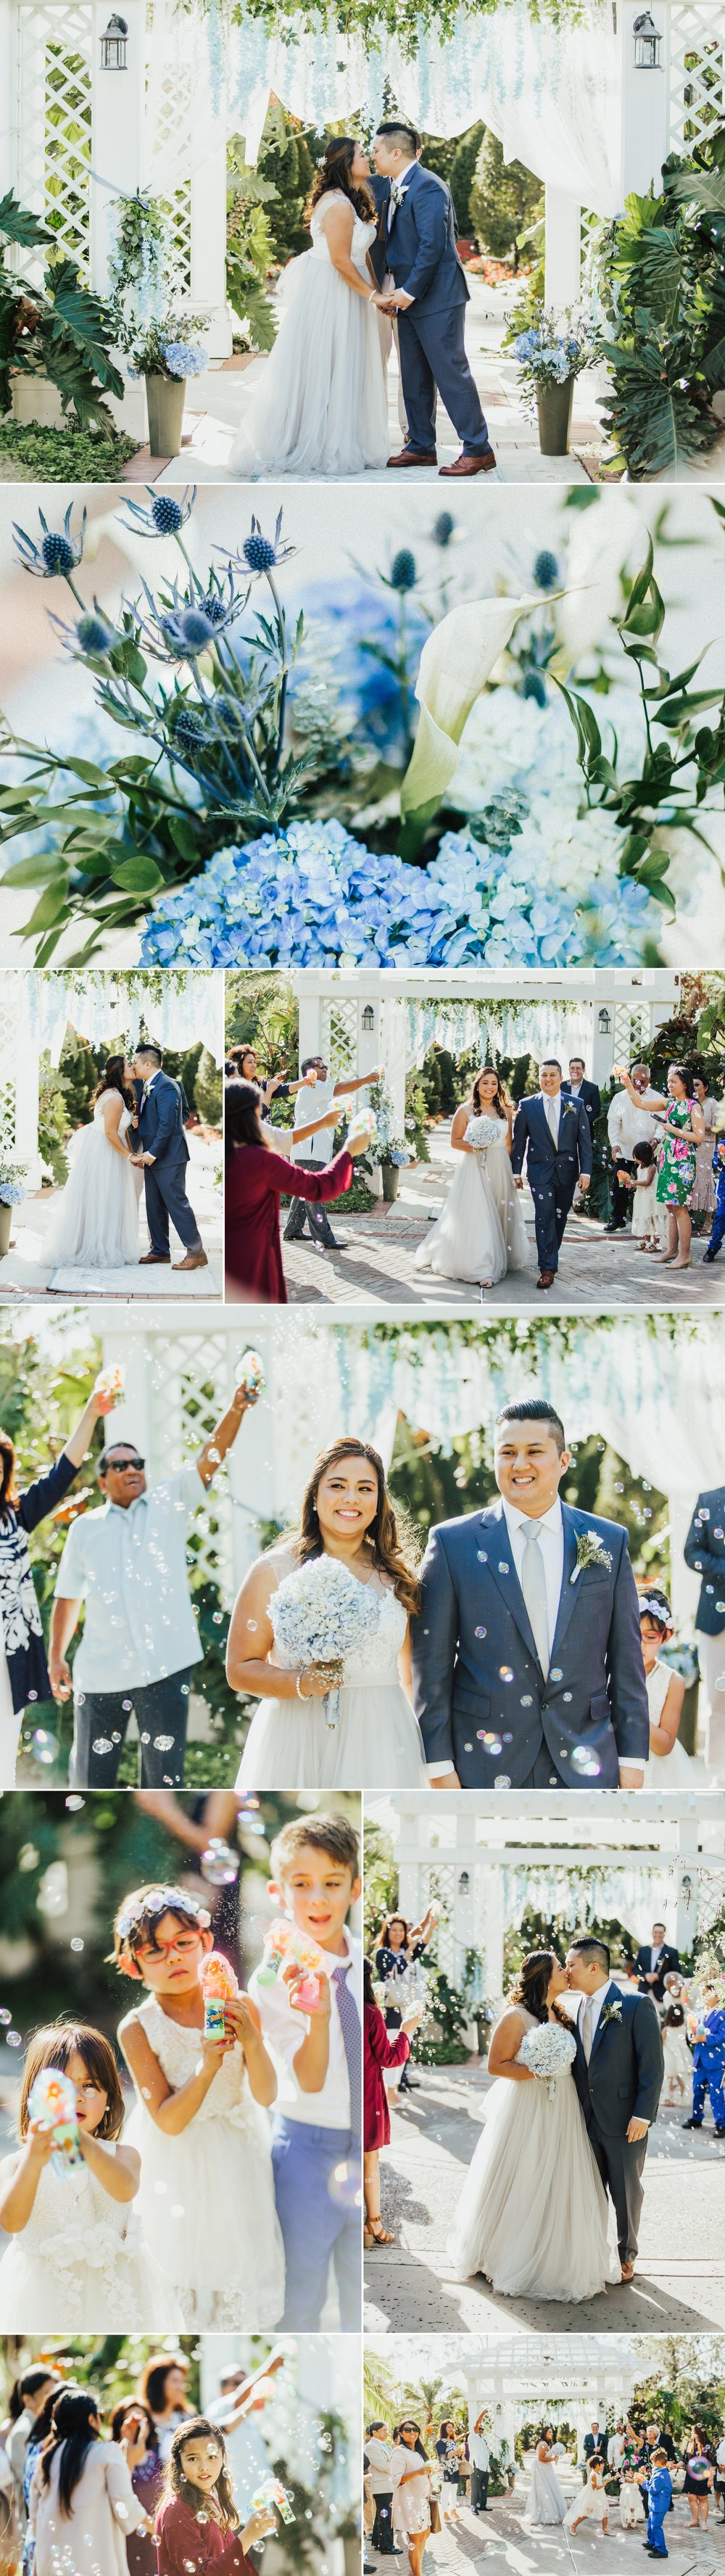 Romantic Leu Gardens Wedding Pictures - Winter Park Wedding Photographer Shaina DeCiryan- Effie+Phillip5.jpg